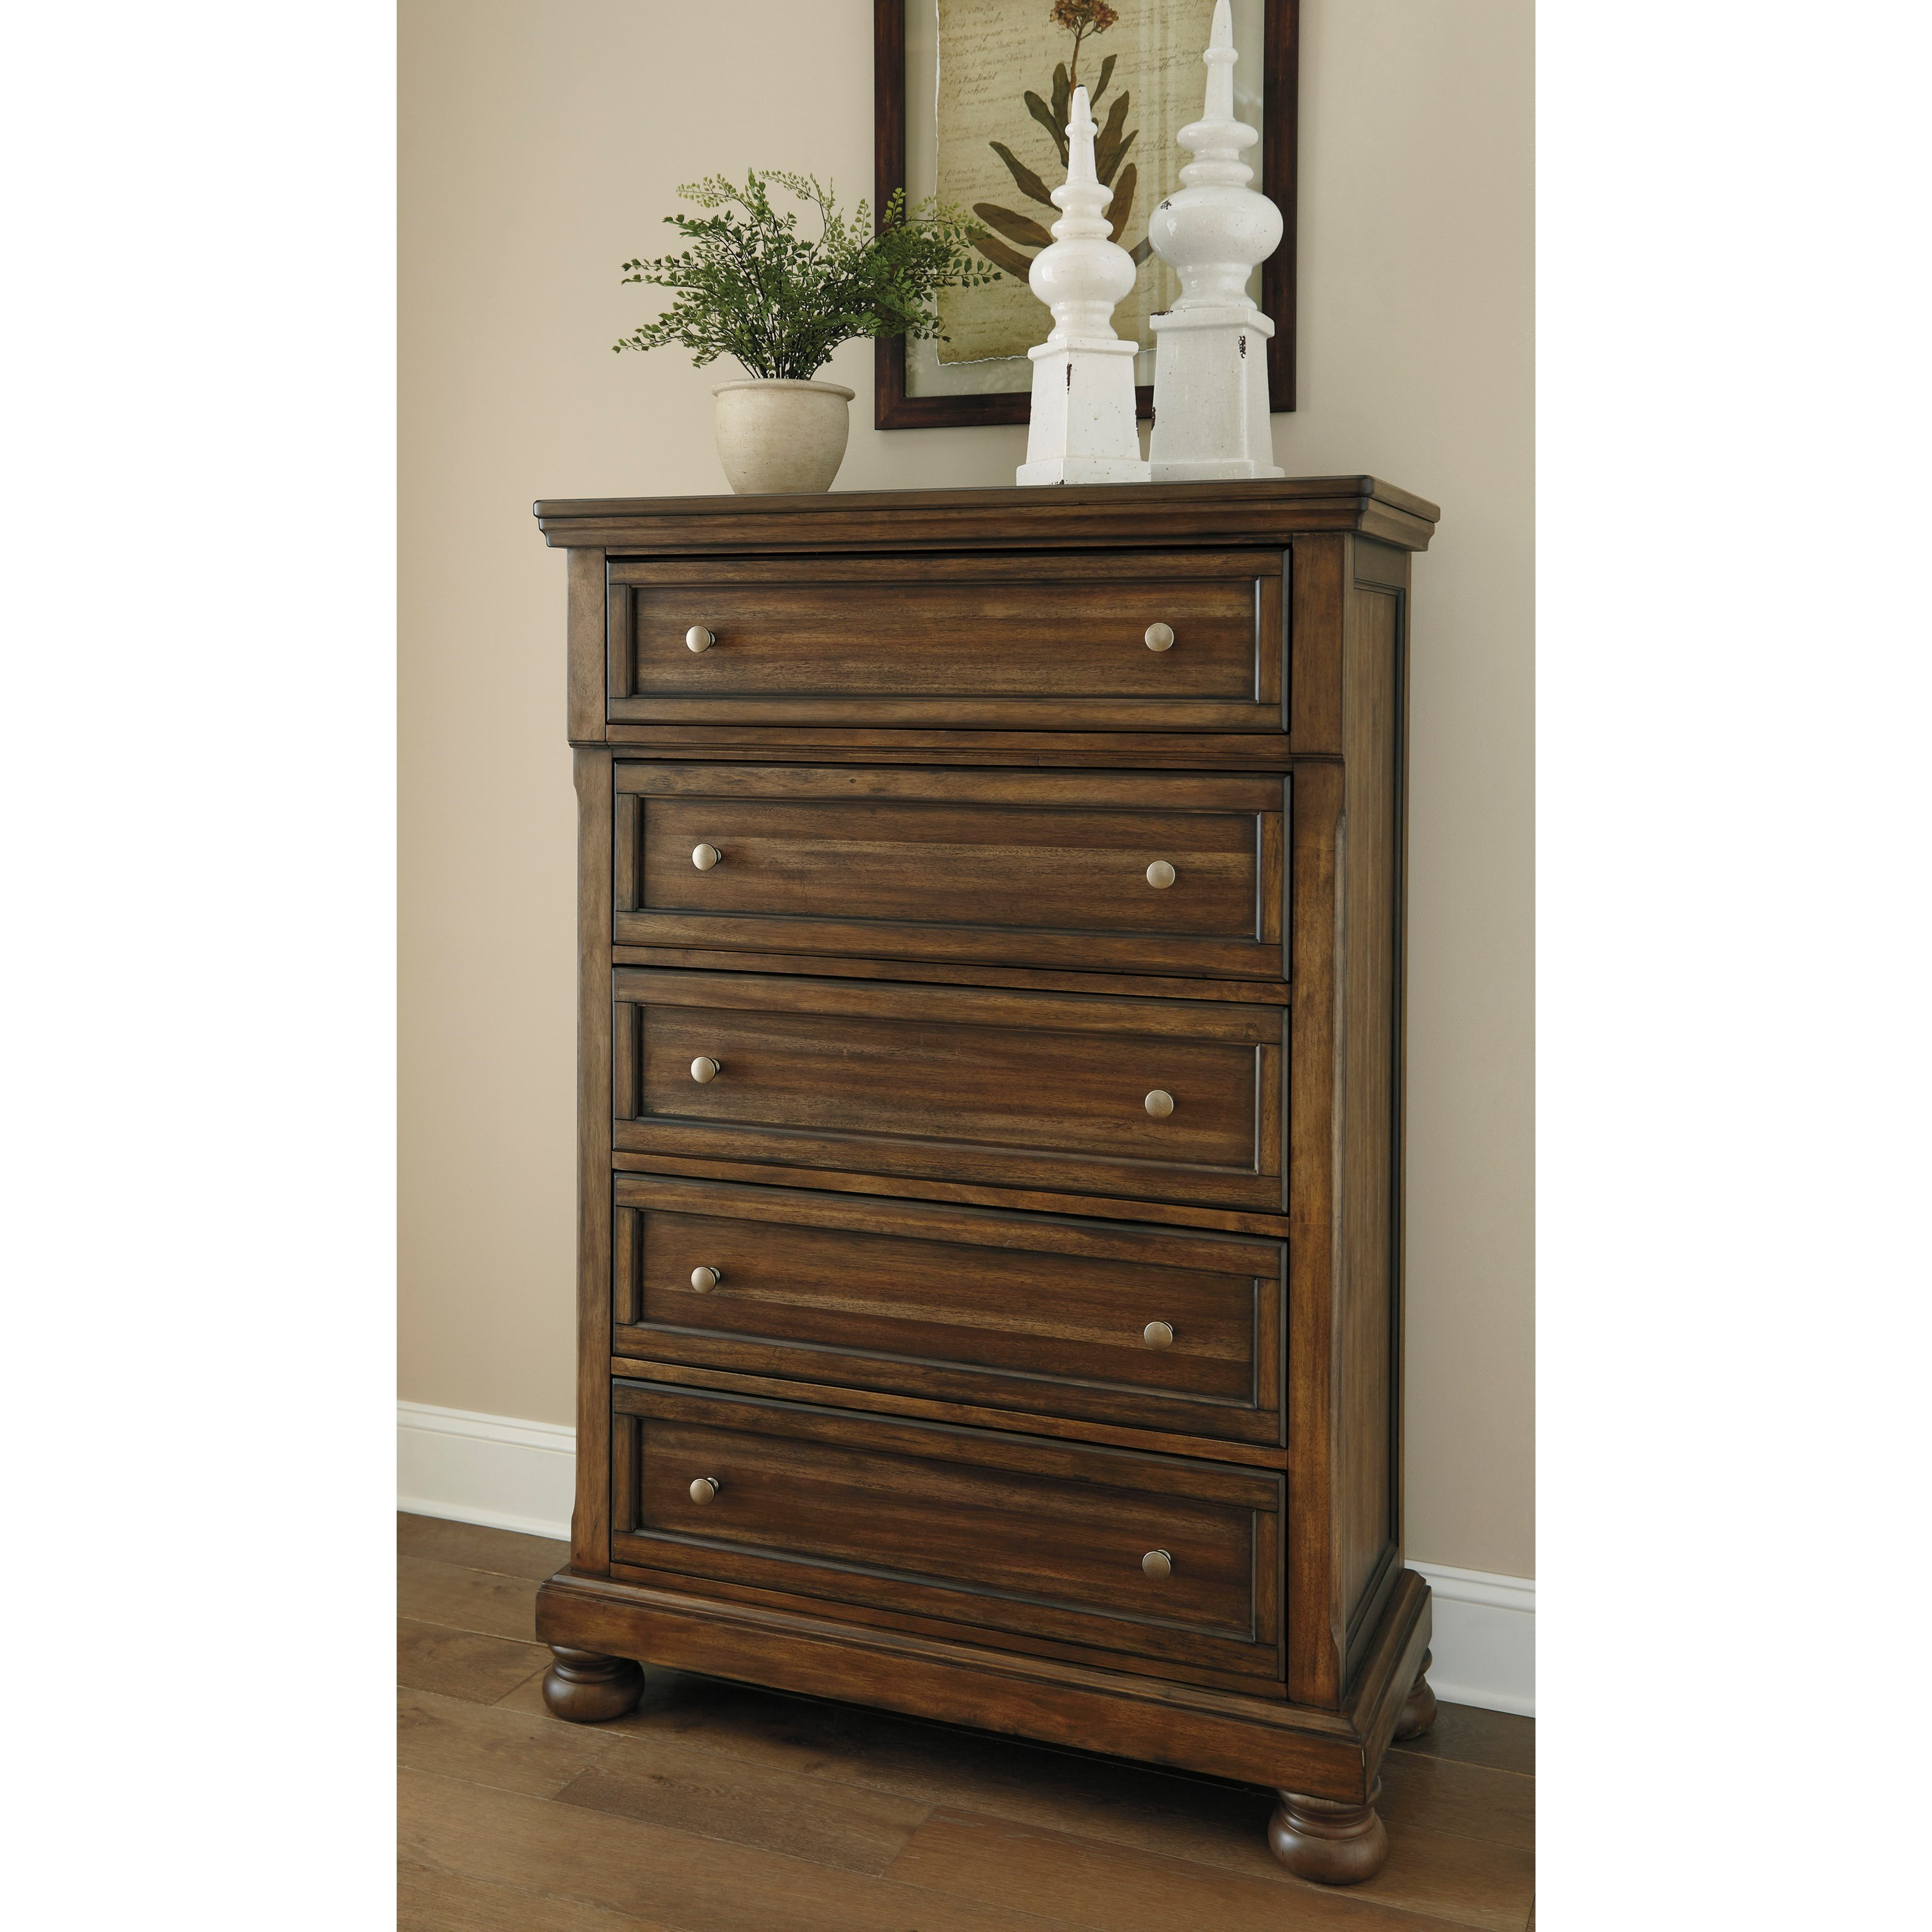 Signature design by ashley flynnter five drawer chest with for Bedroom furniture 37027